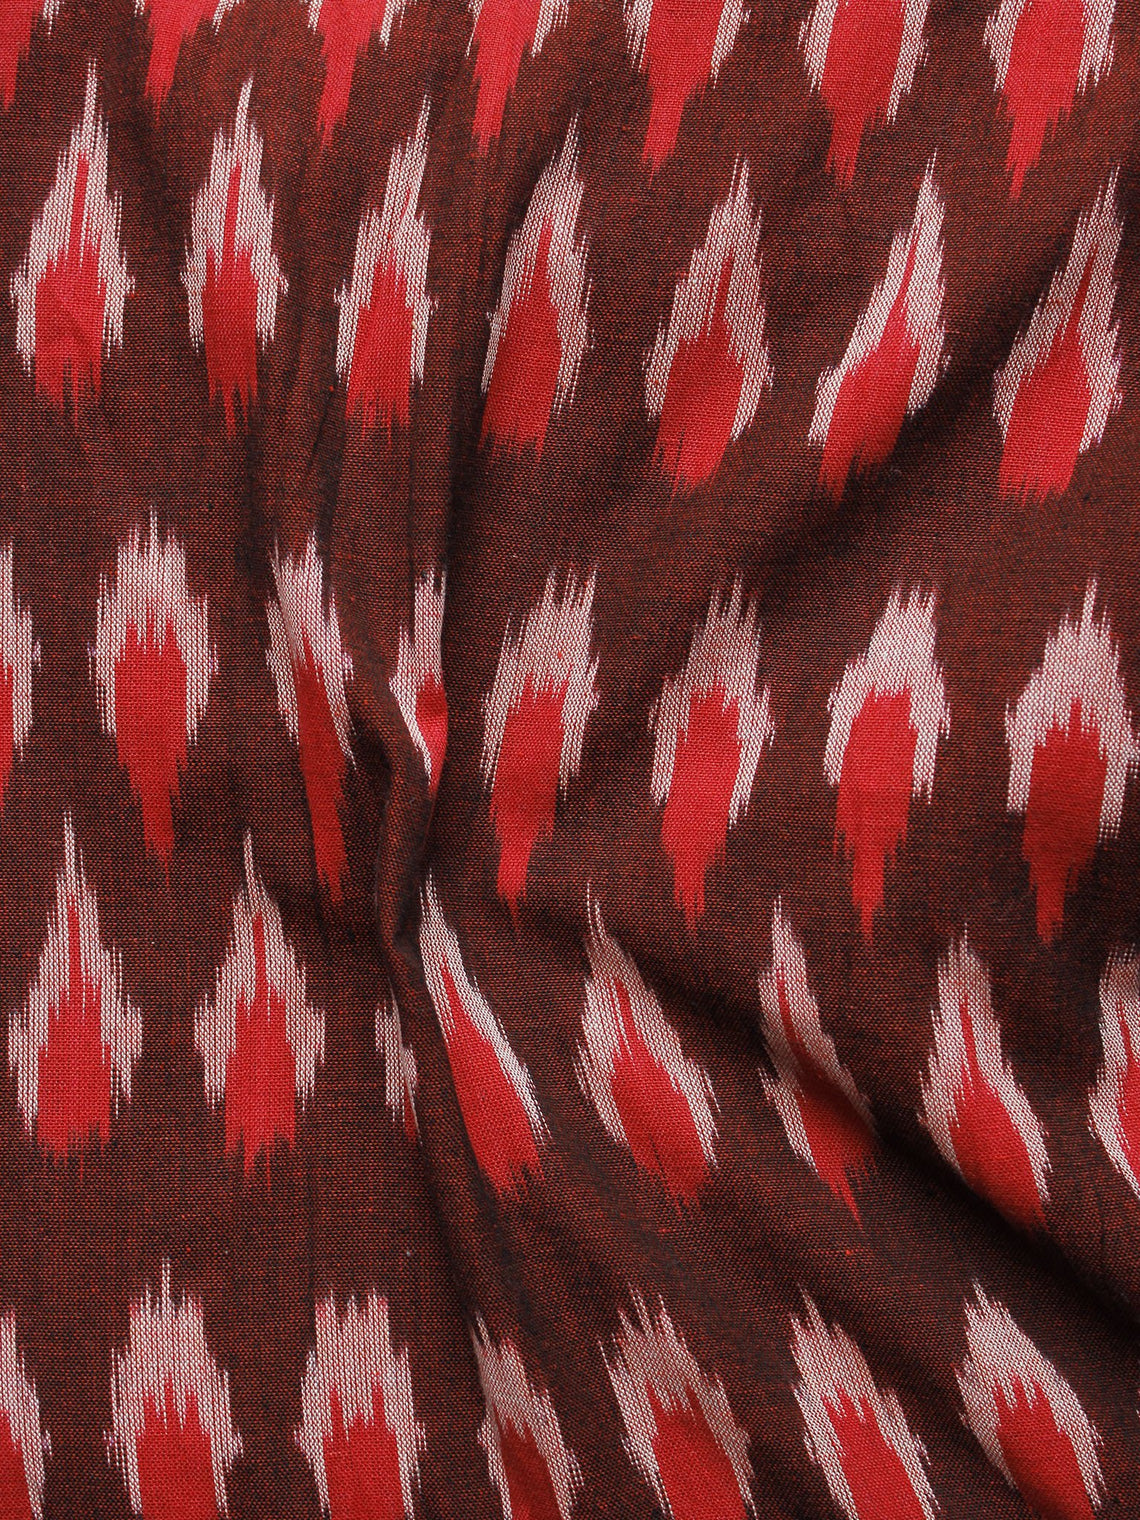 Reddish Brown Red Ivory Pochampally Hand Woven Ikat Fabric Per Meter - F002F963